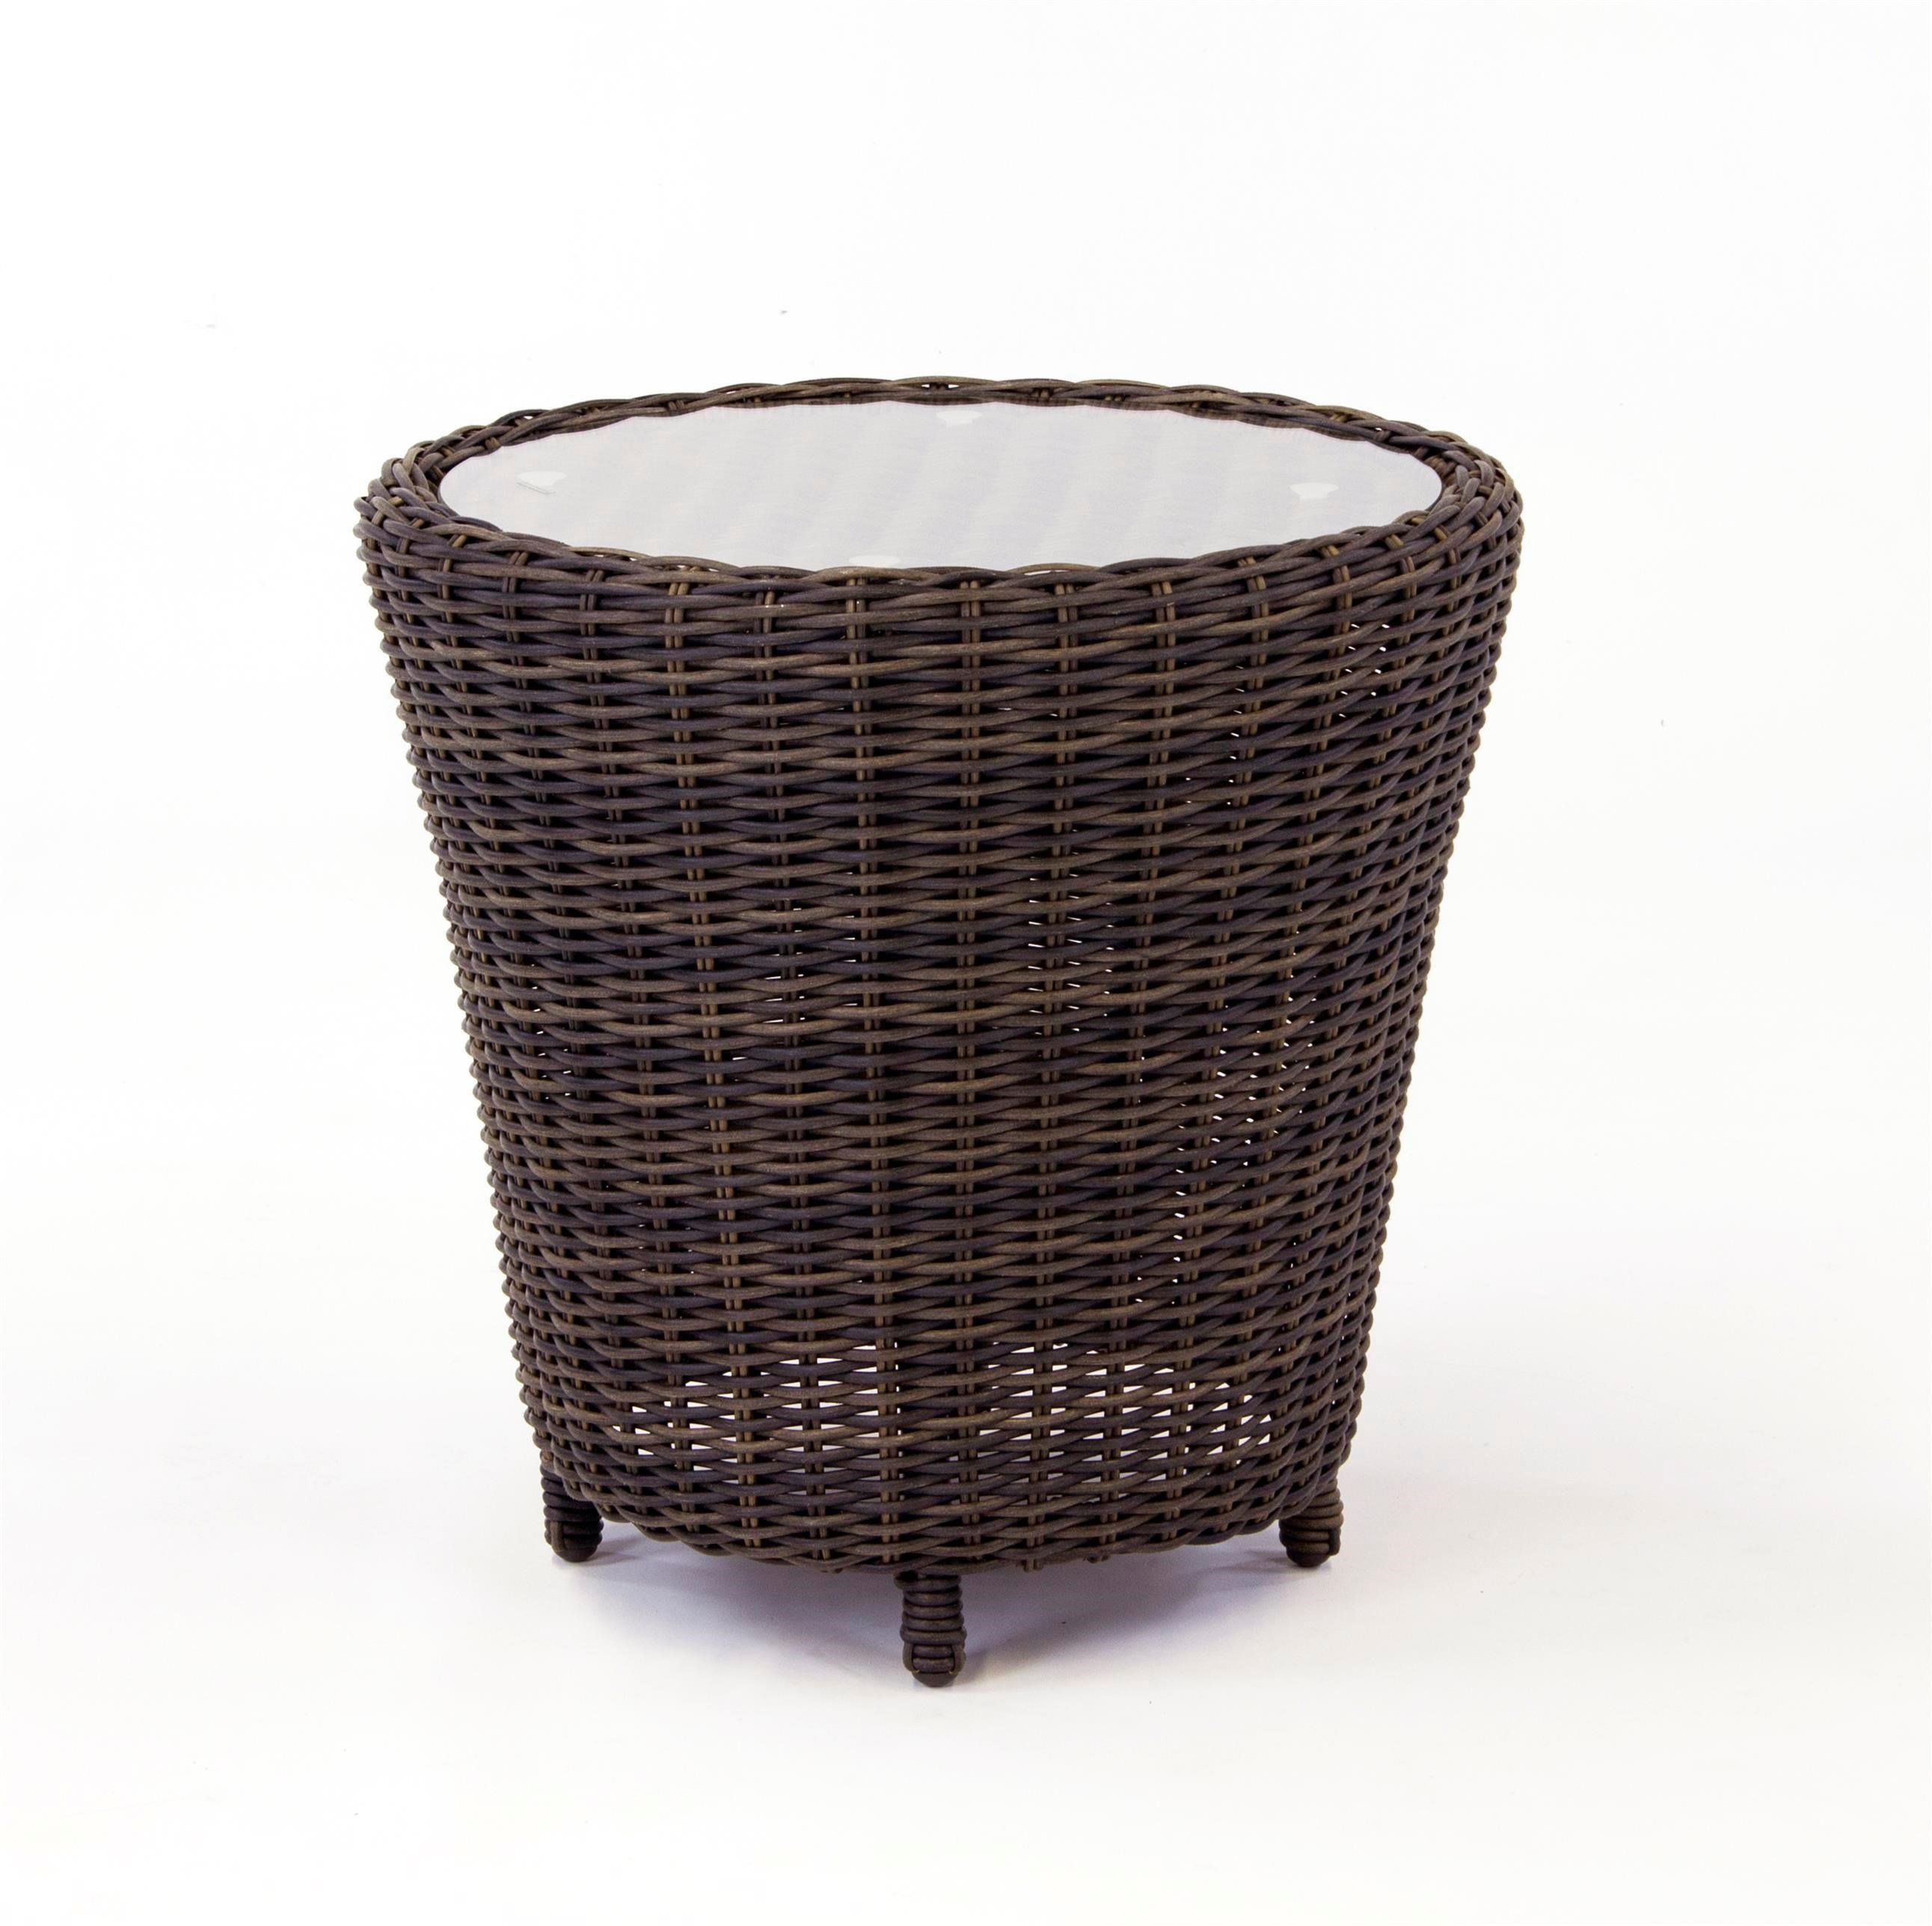 South Sea Rattan & Wicker Barrington End Table - Item Number: 77743